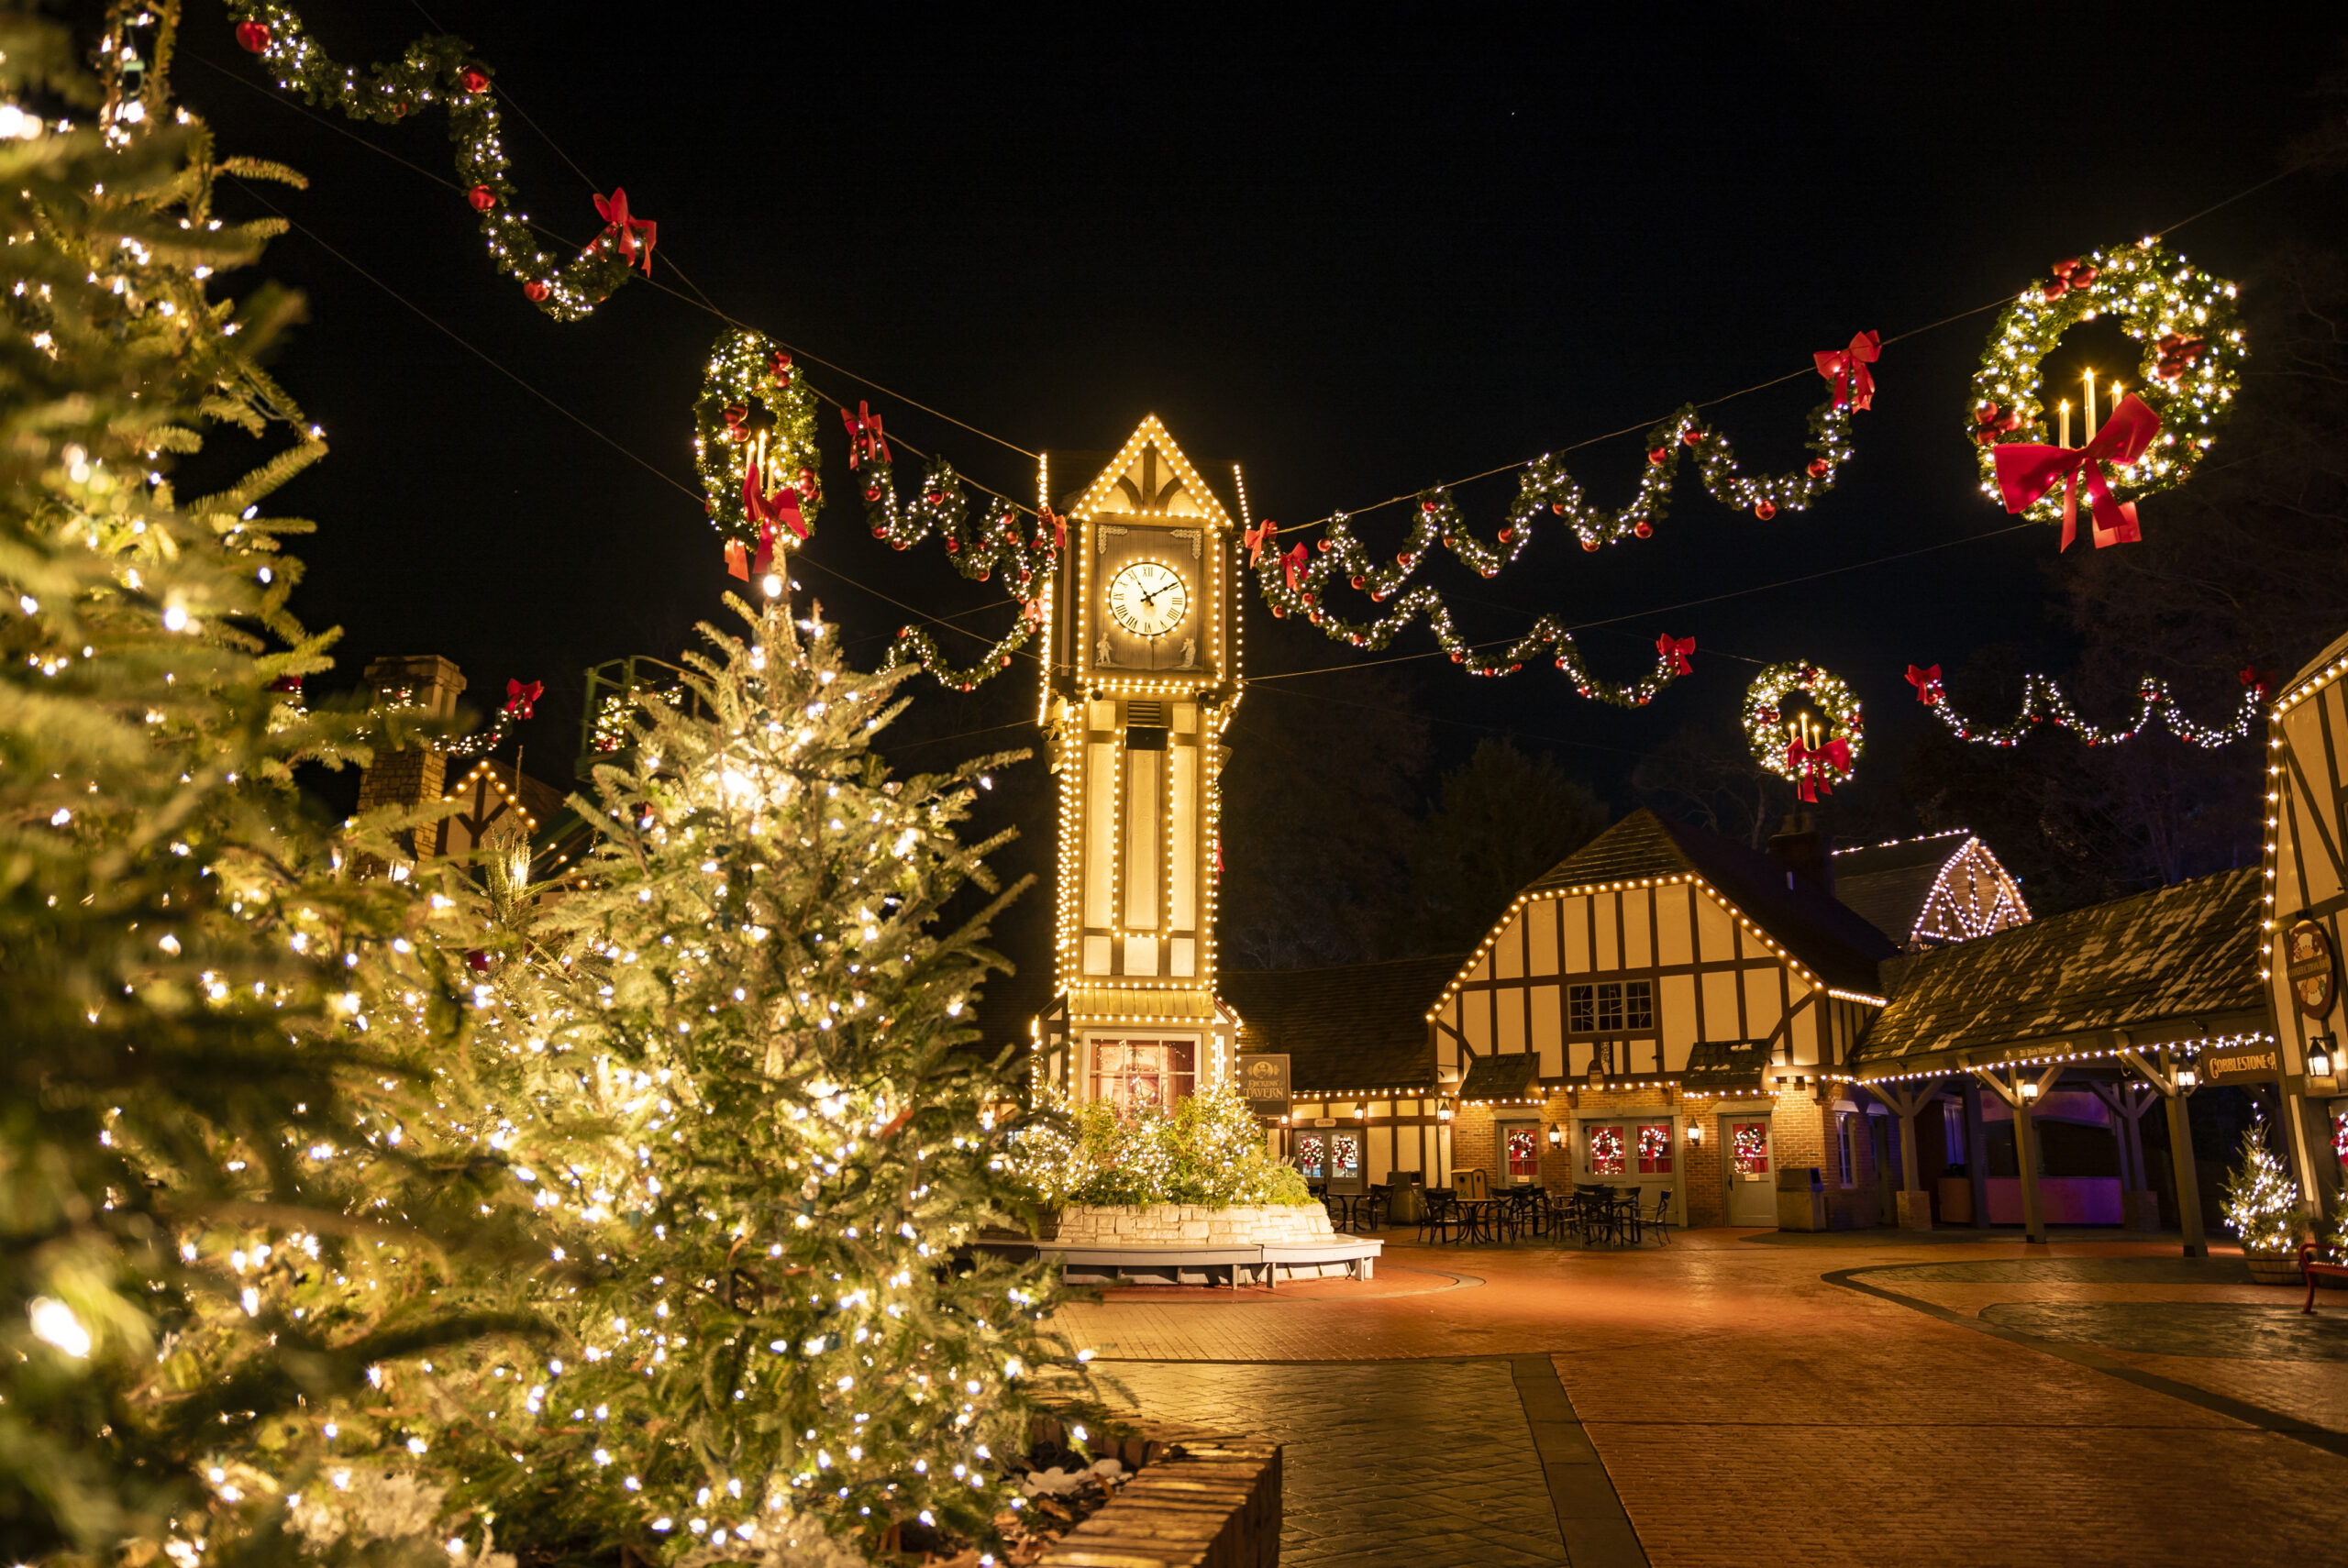 WRAP UP THE YEAR WITH SOME HOLIDAY CHEER AT THE ALL-NEW BUSCH GARDENS® CHRISTMAS CELEBRATION